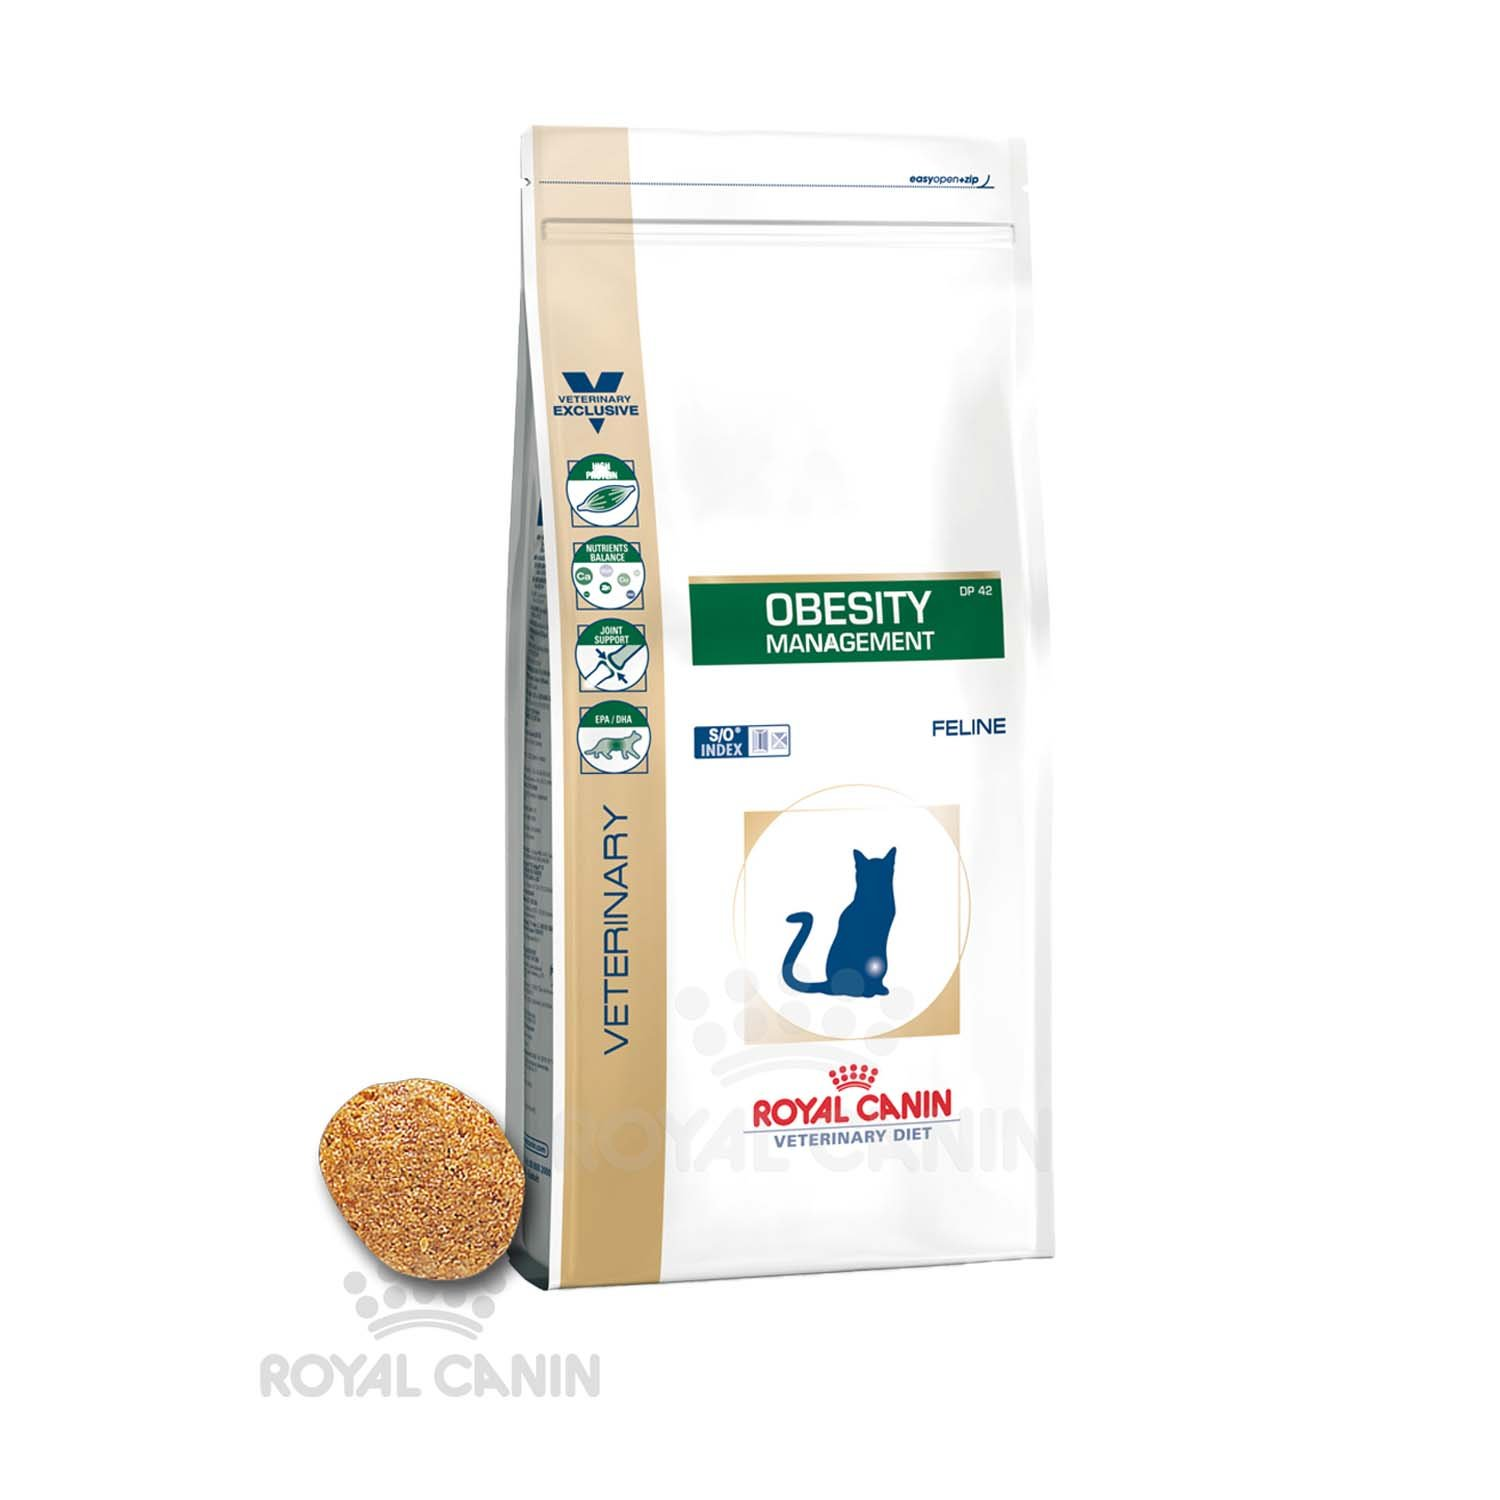 Royal Canin Obesity Management DP 42 Nourriture pour Chat 1, 5 kg 3182550711104